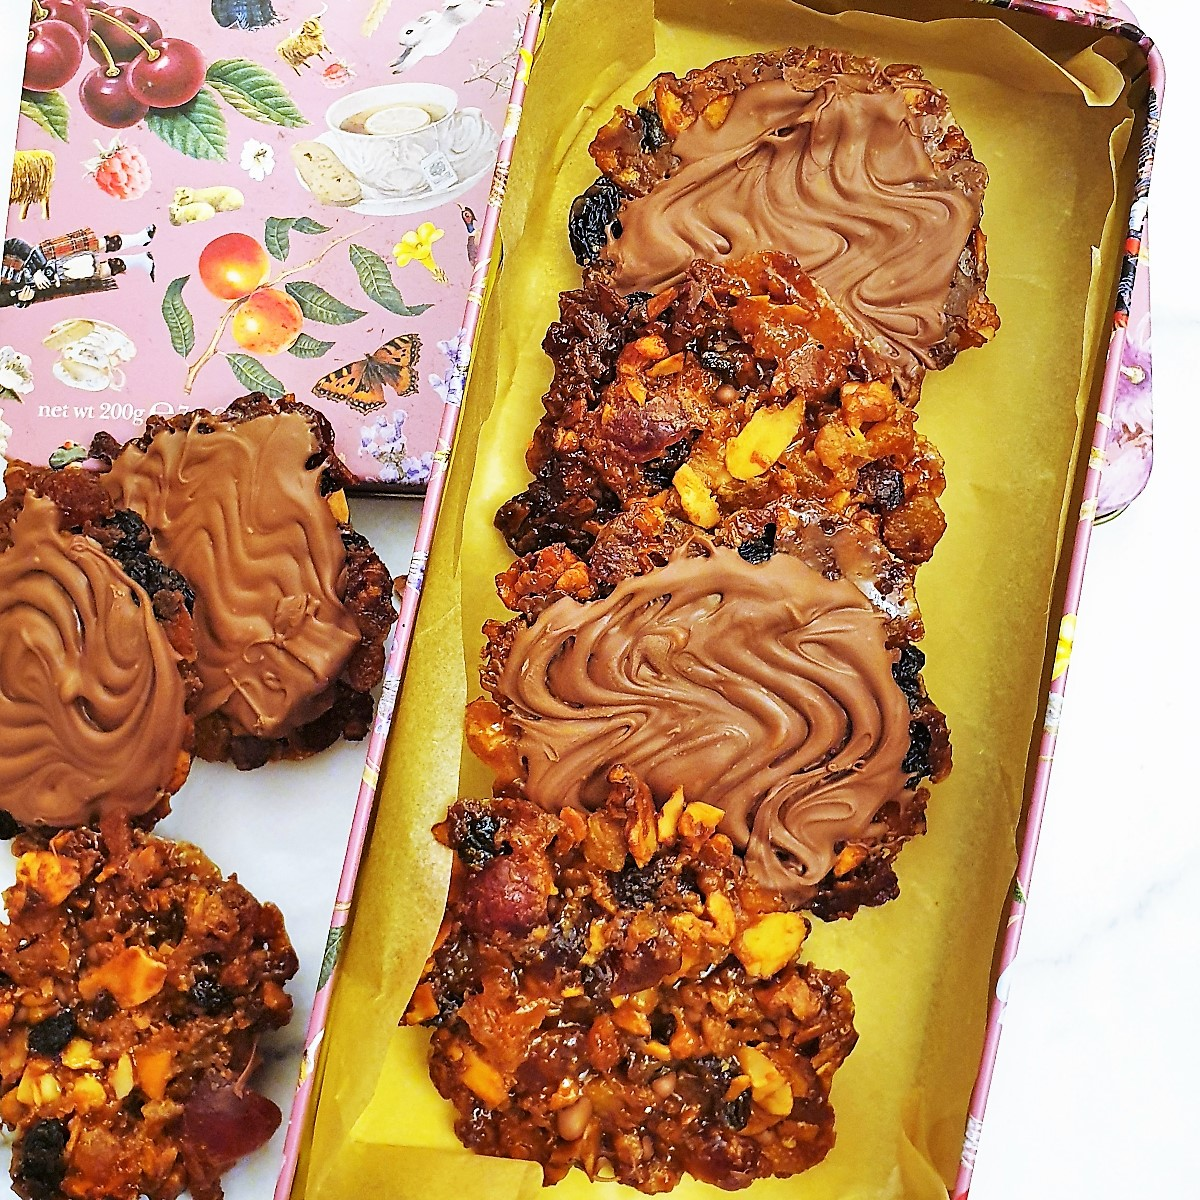 Chocolate florentines in a tin.